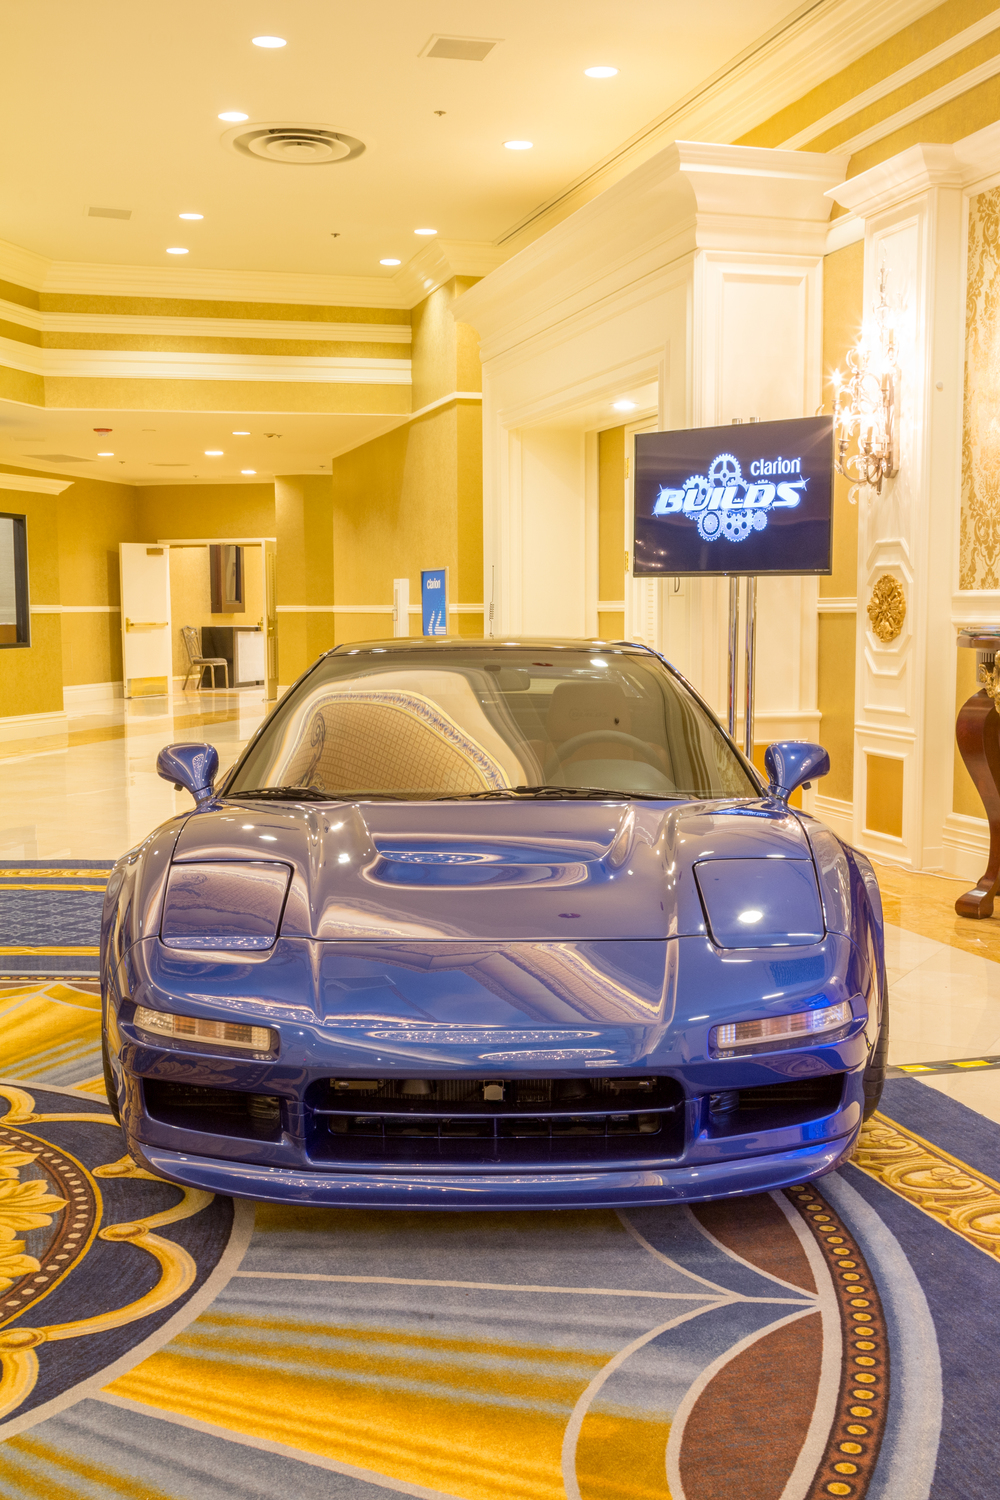 Clarion CES 2016-122-HDR.jpg